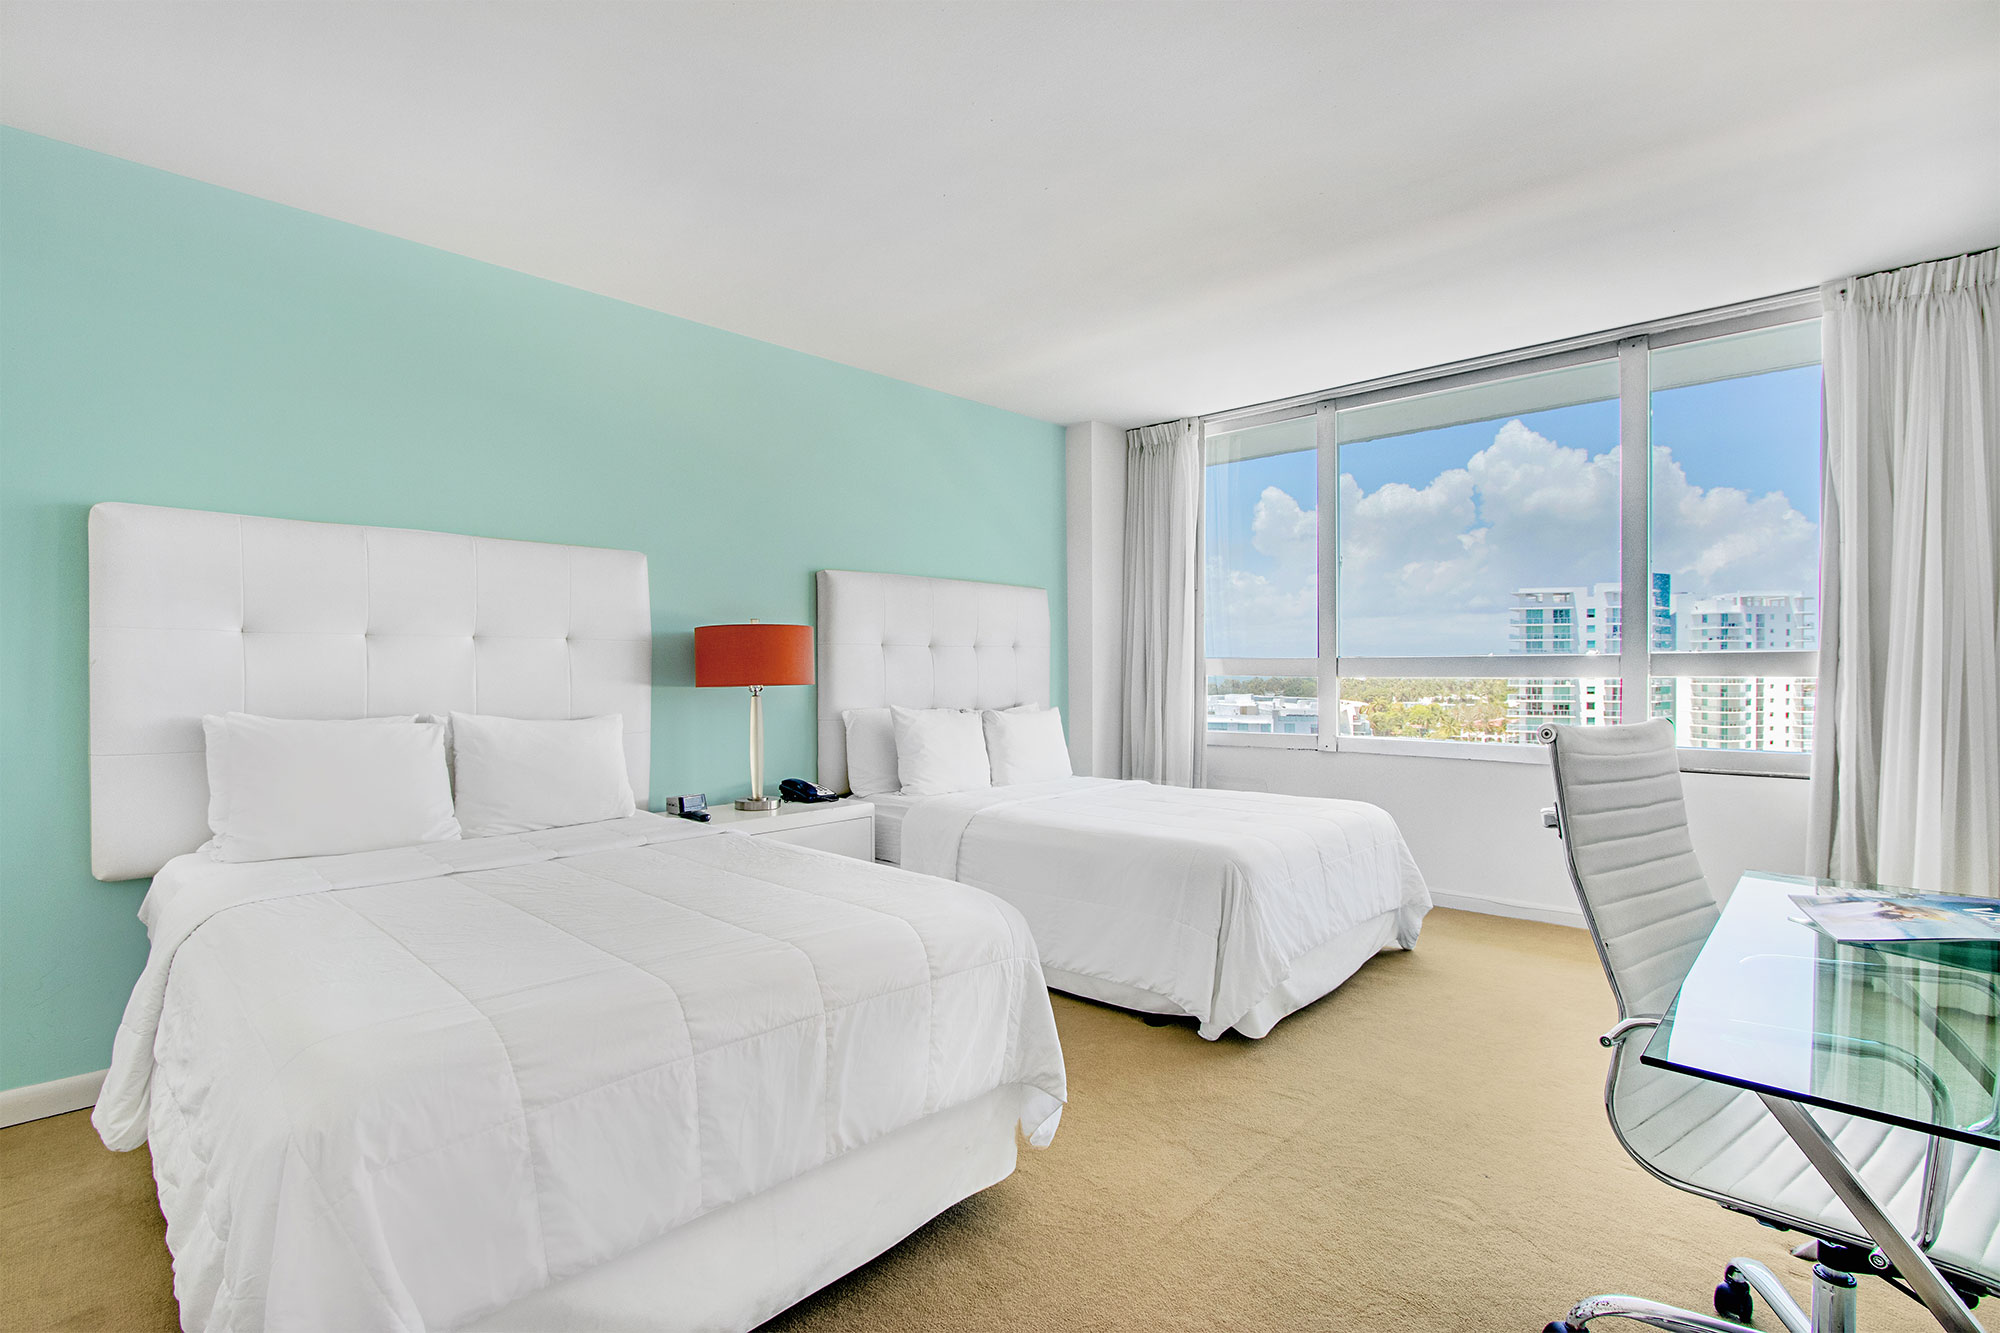 Deluxe City view 2 Double Beds room type at the Deauville Beach Resort